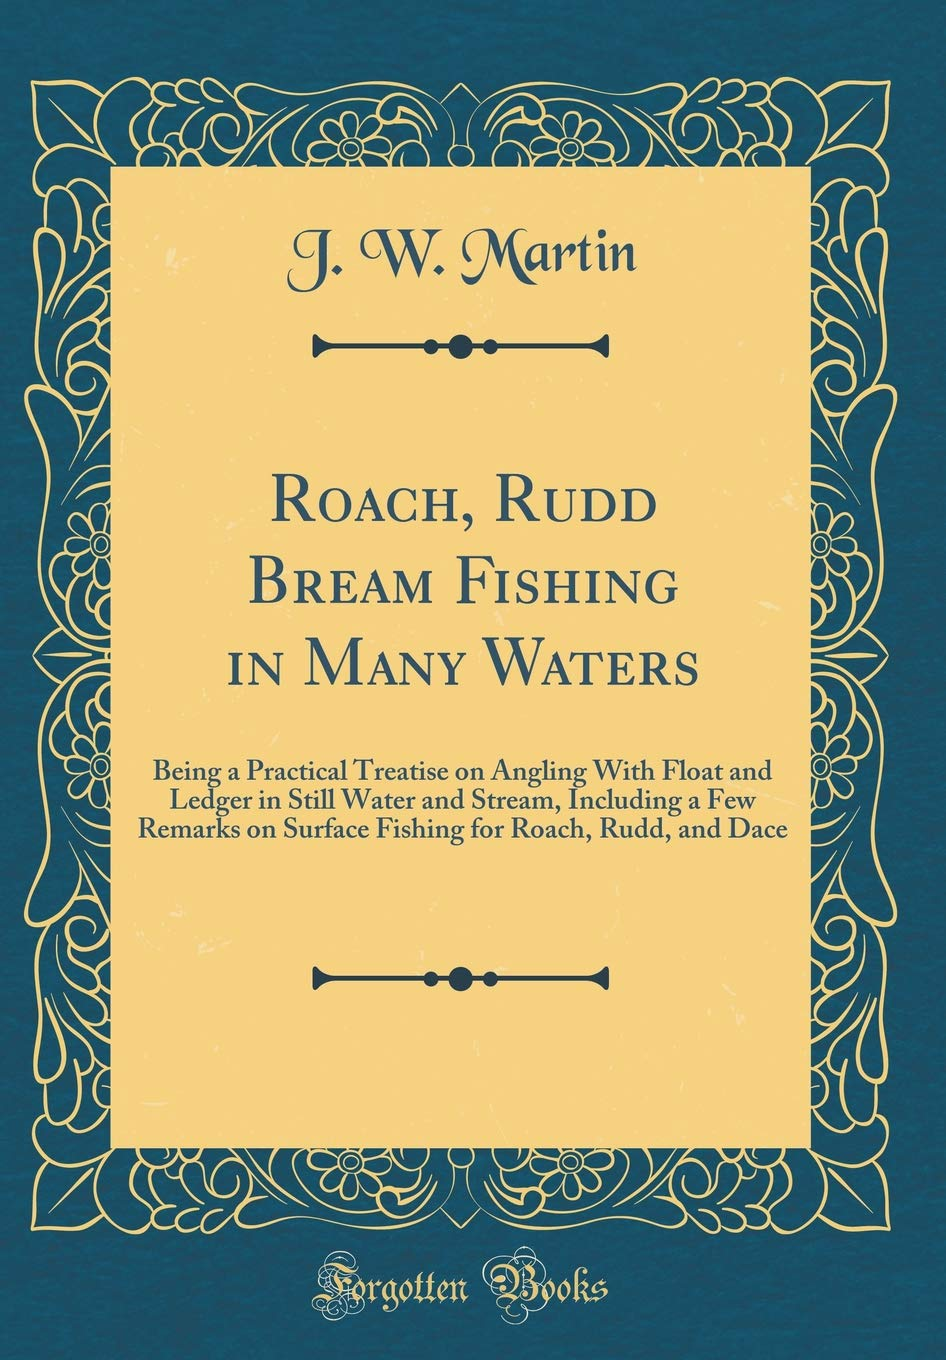 Roach, Rudd Bream Fishing in Many Waters: Being a Practical Treatise on Angling With Float and Ledger in Still Water and Stream, Including a Few ... for Roach, Rudd, and Dace (Classic Reprint) pdf epub